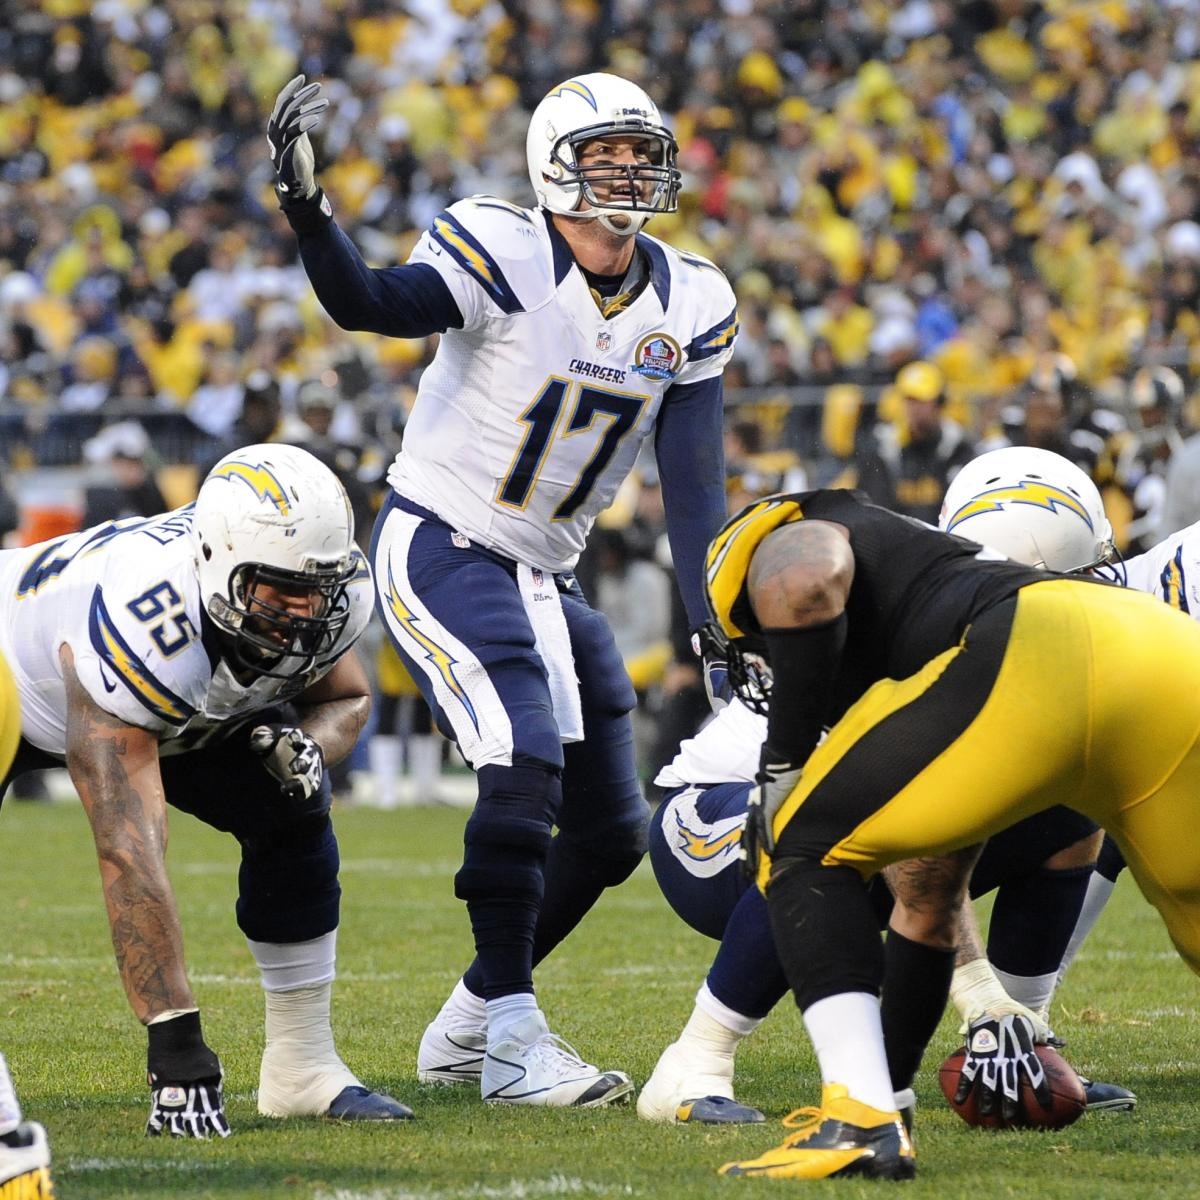 San Diego Chargers Broadcast: Monday Night Football Week 5: TV Schedule, Live Stream For